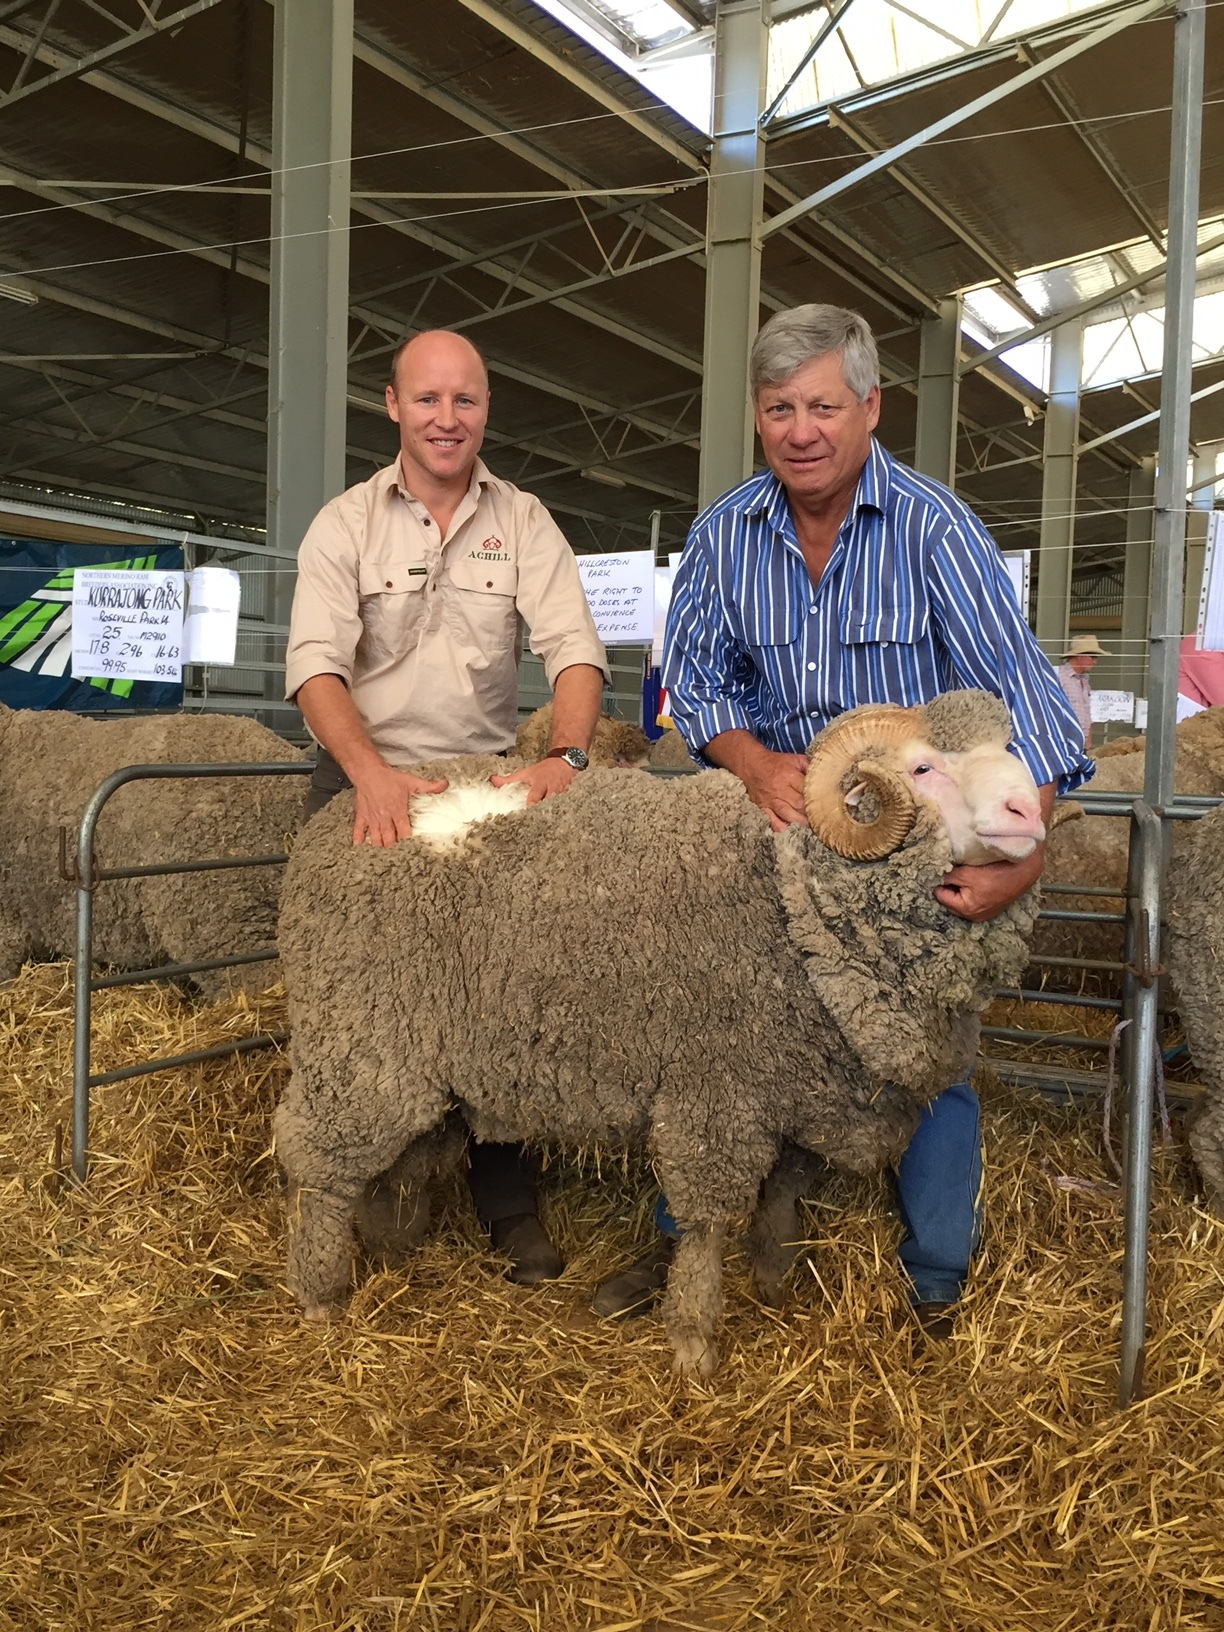 Hillcreston Park sold 16.2 Micron Ultrafine Merino Ram to Charles Coventry Achill Armidale at the Armidale ram sale for $5000